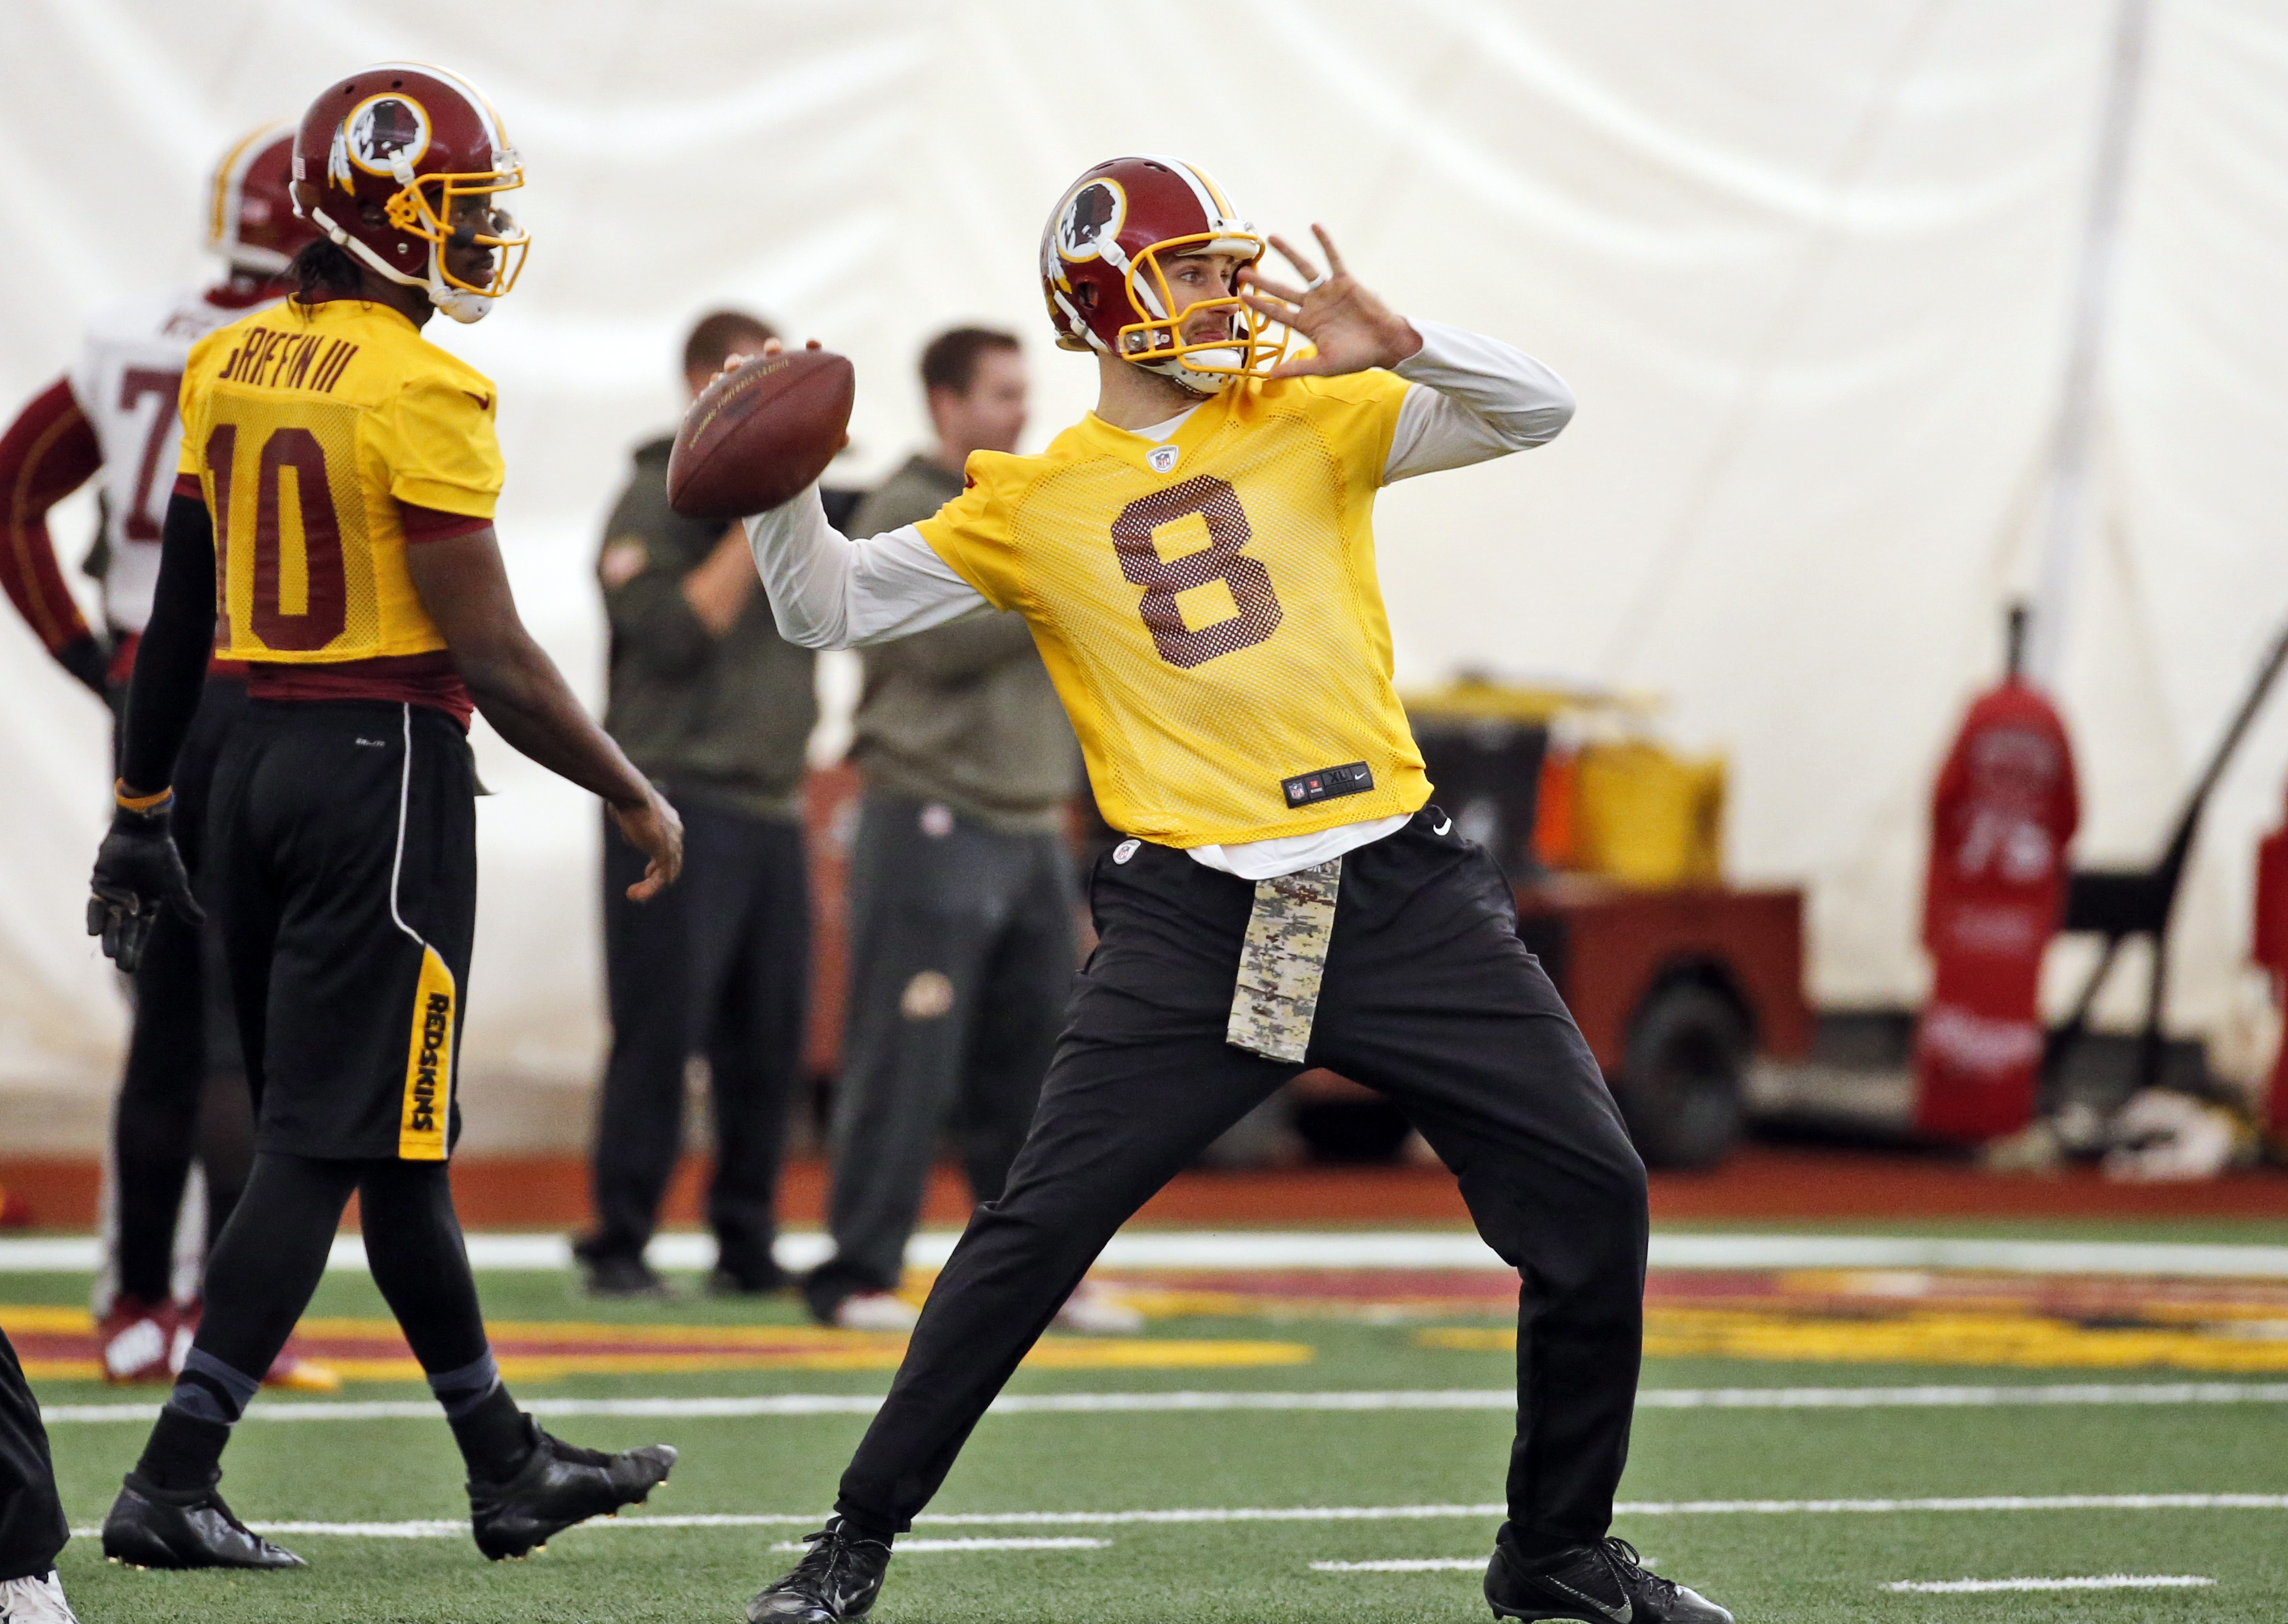 Washington Redskins quarterback Robert Griffin III (10) watches as quarterback Kirk Cousins (8) throws the ball during practice at the team's NFL football training facility at Redskins Park, Thursday, Jan. 7, 2016 in Ashburn, Va. The Washington Redskins w